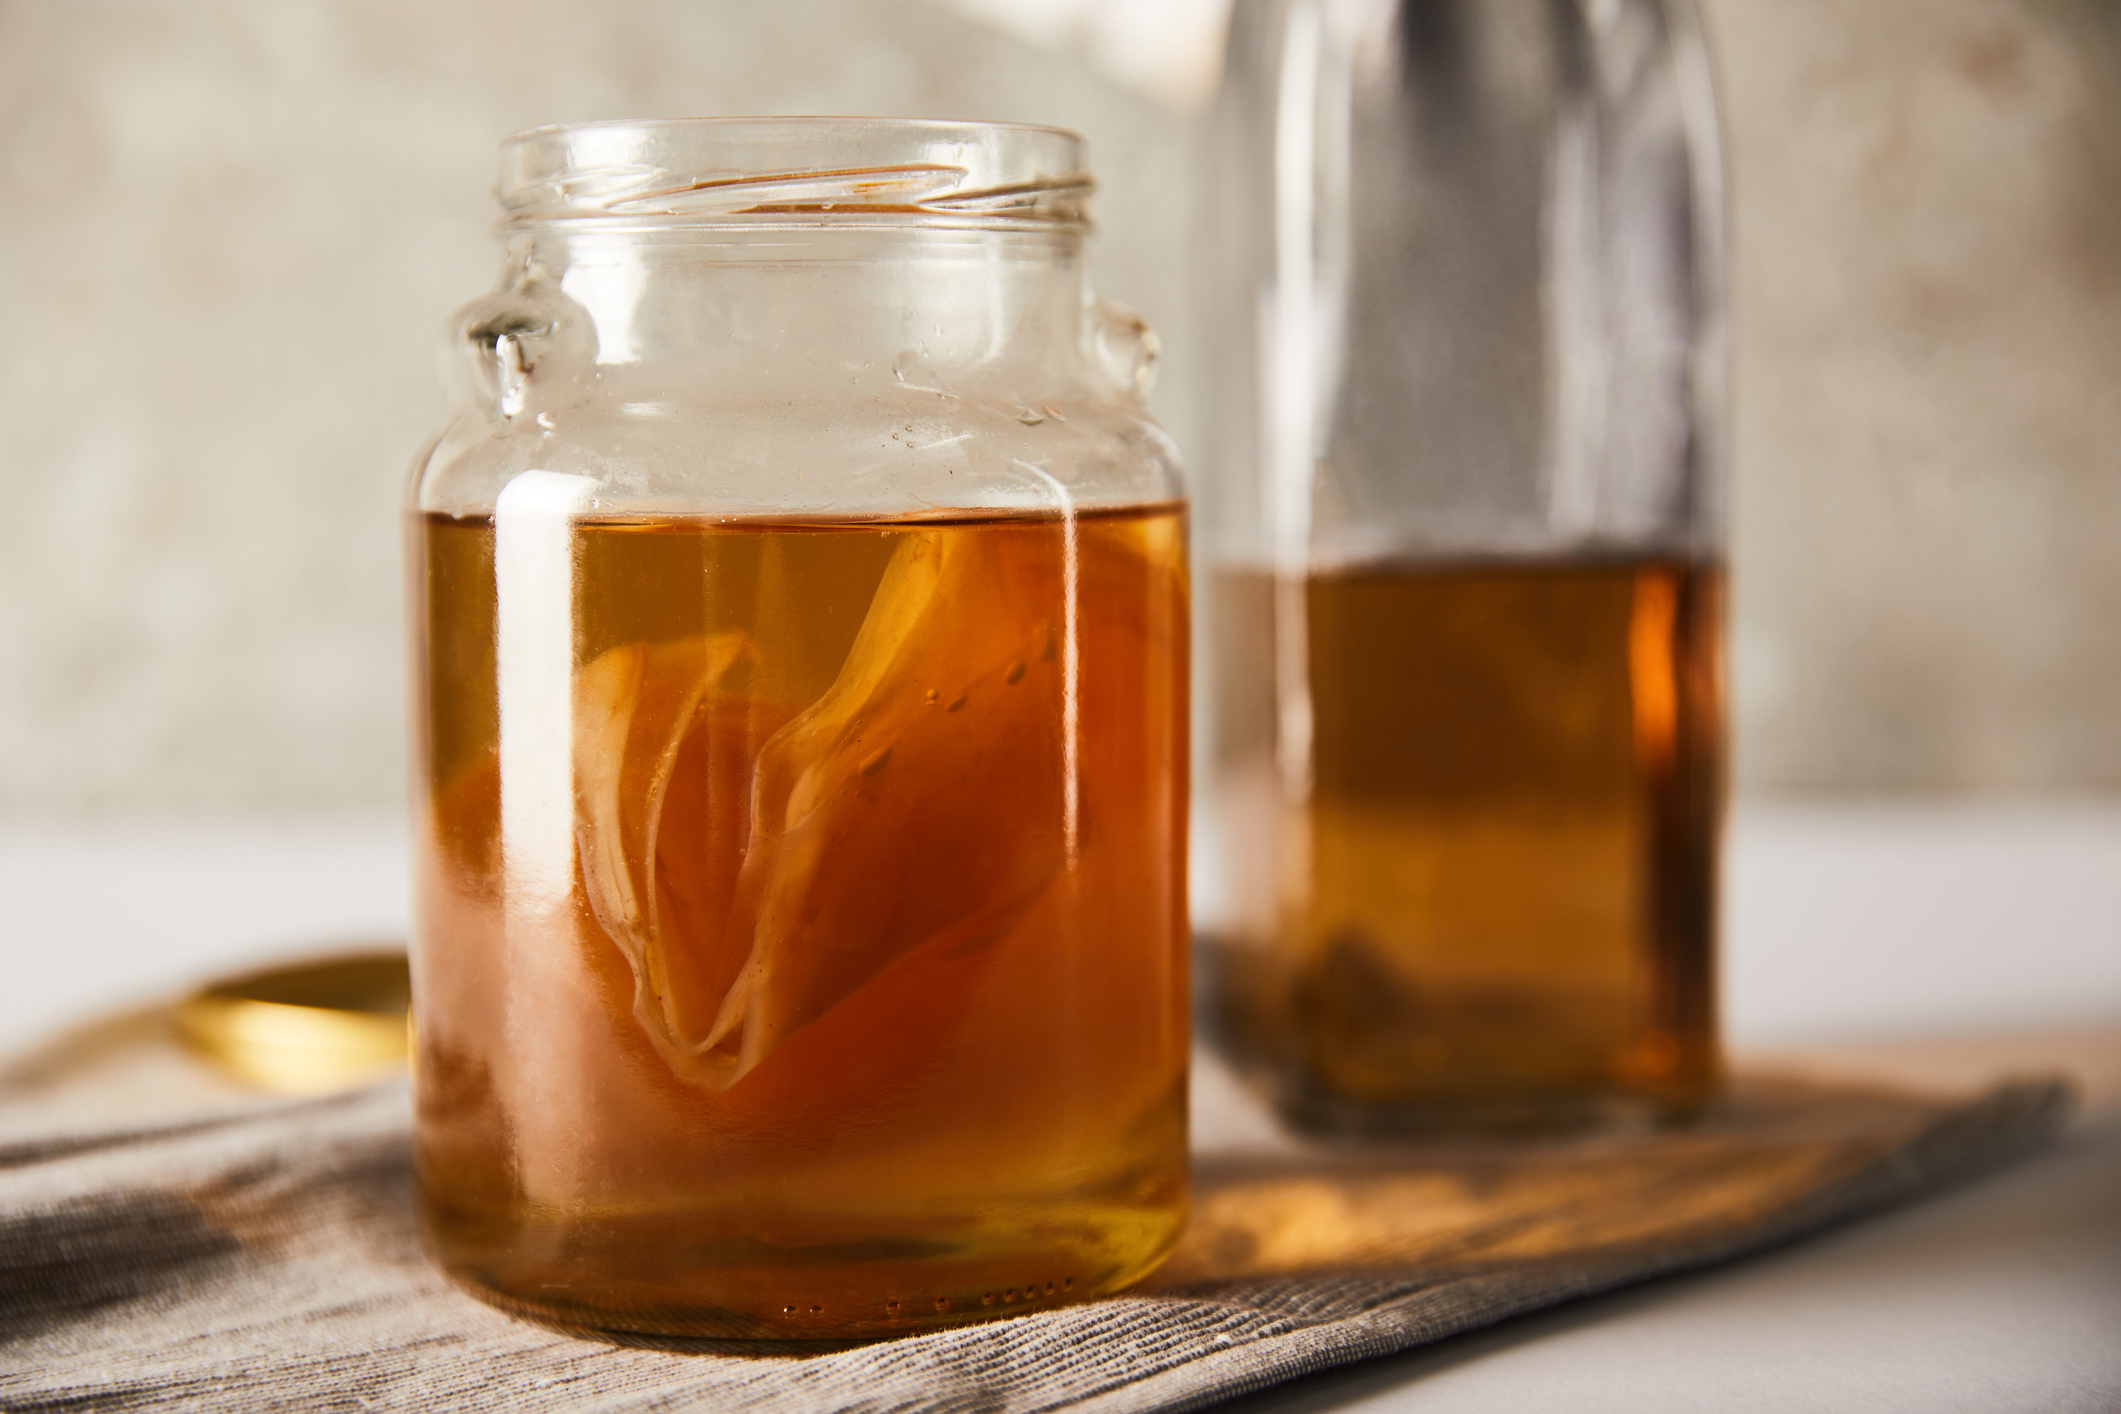 kombucha tea in a jar